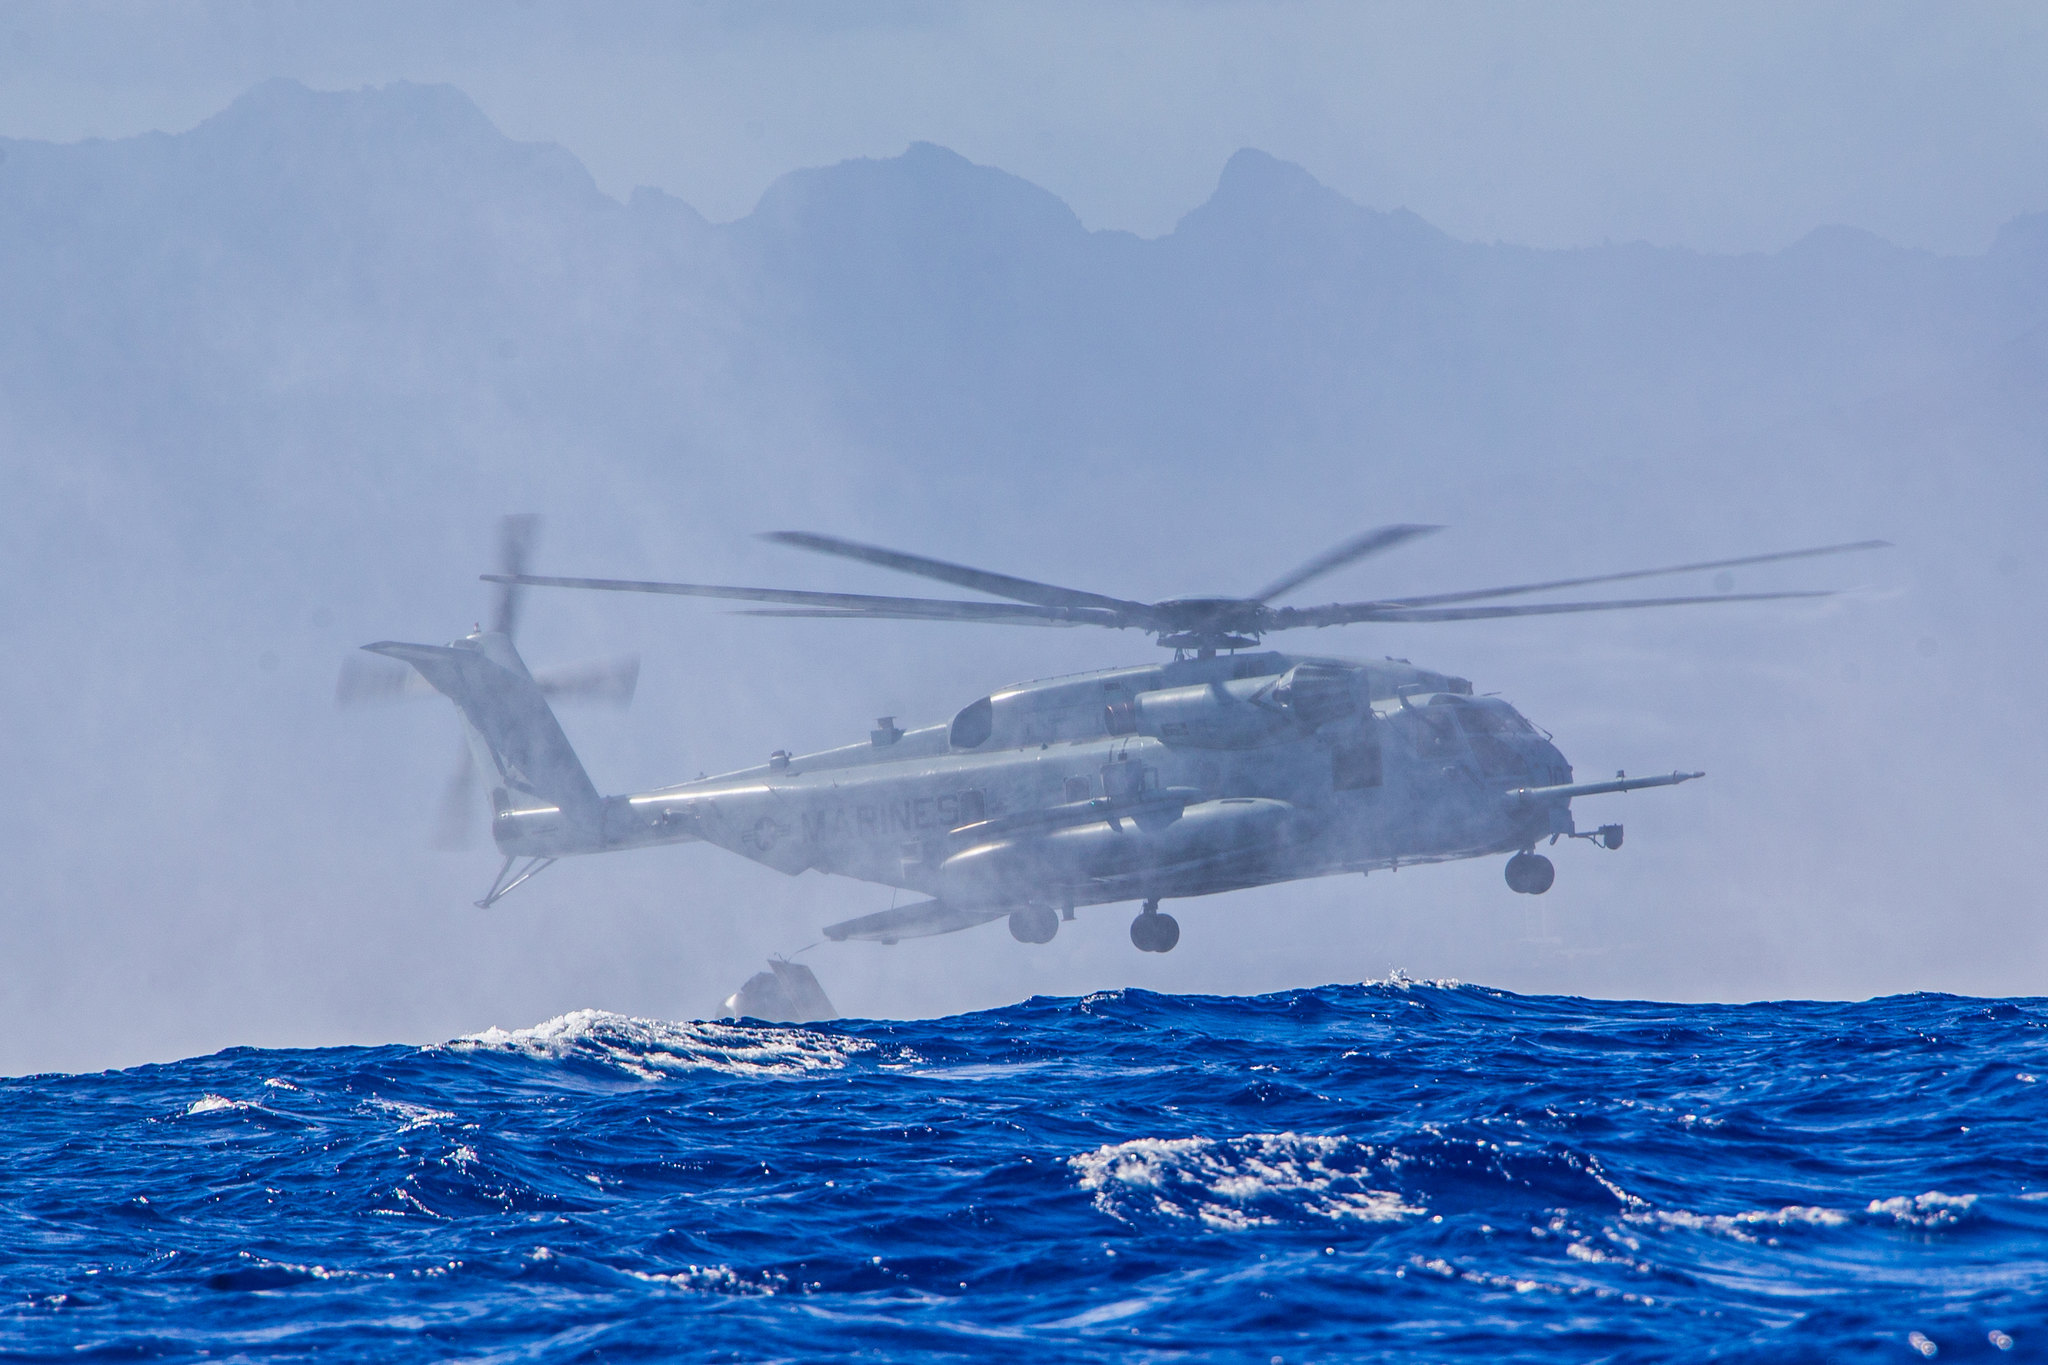 Marines approach the water with a CH-53E Super Stallion helicopter during helicopter casting training with U.S. Navy sailors off the island of Oahu, Hawaii, June 30, 2020. (Lance Cpl. Jacob Wilson/Marine Corps)